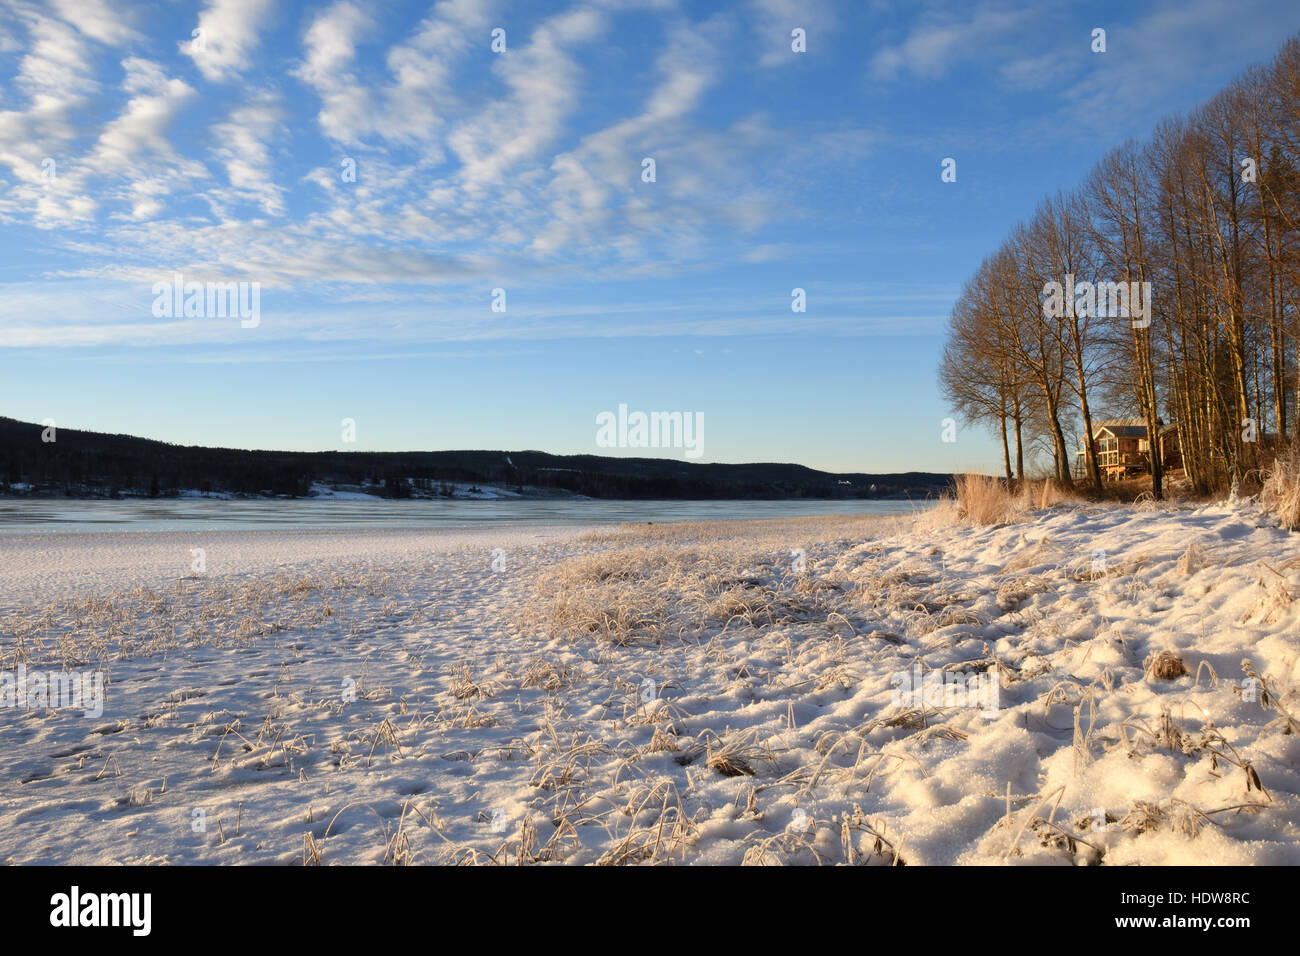 Sea Shore With Snow And Mountain In Background And Blue Sky With Some  Clouds, Picture